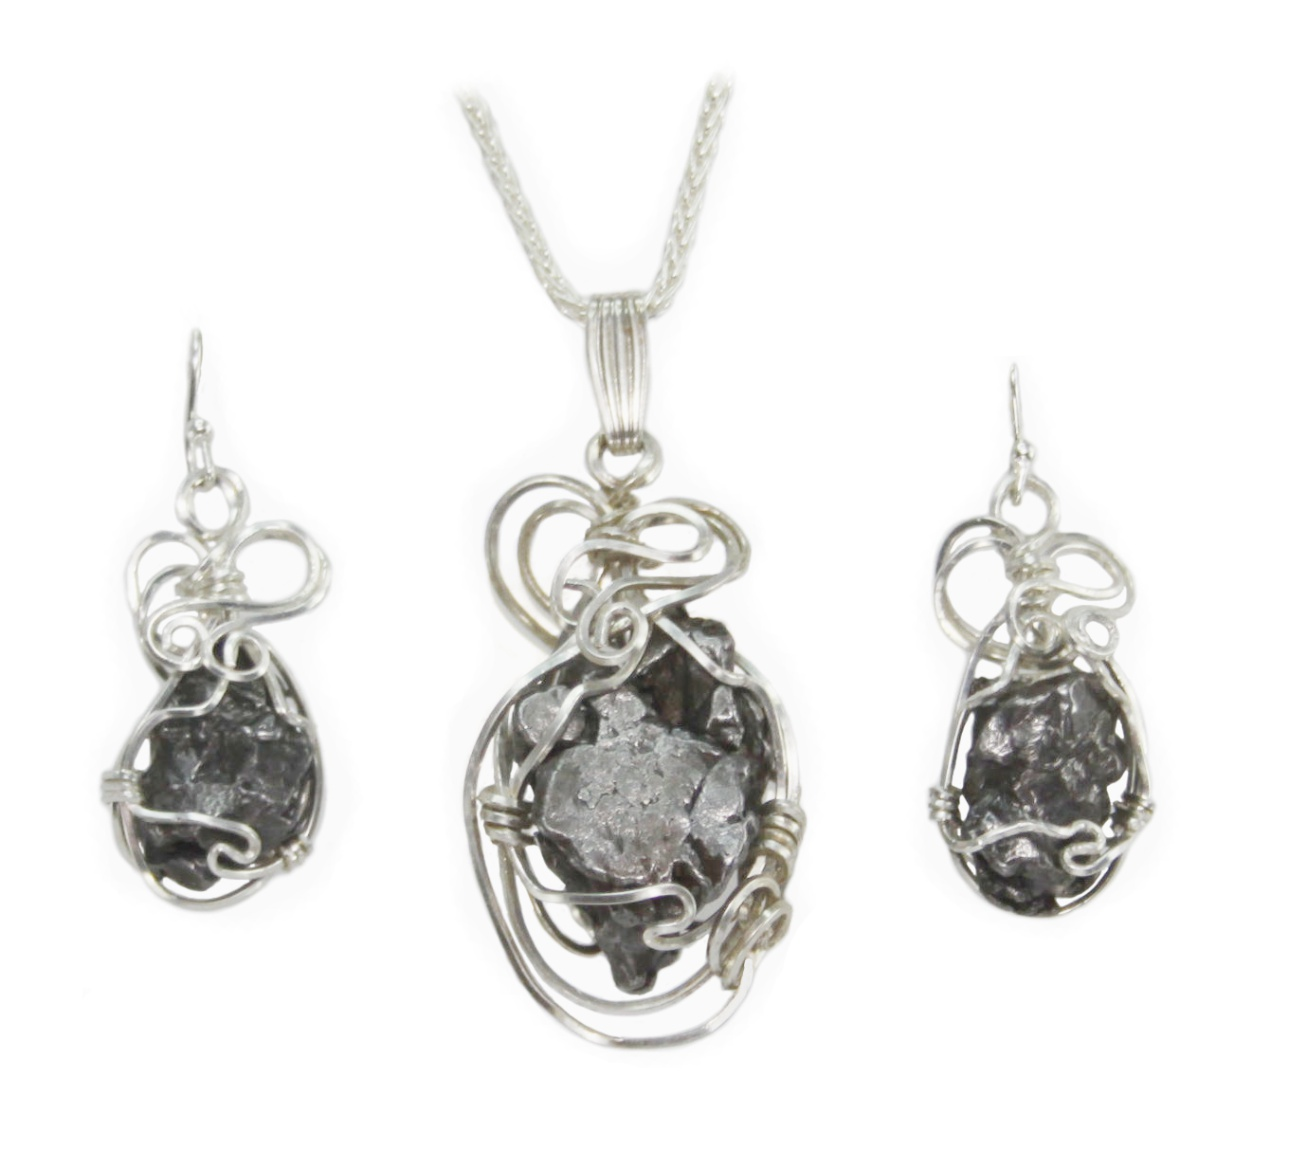 Meteorite pendant necklace earrings set meteorite jewelry pendant necklace earrings set aloadofball Image collections